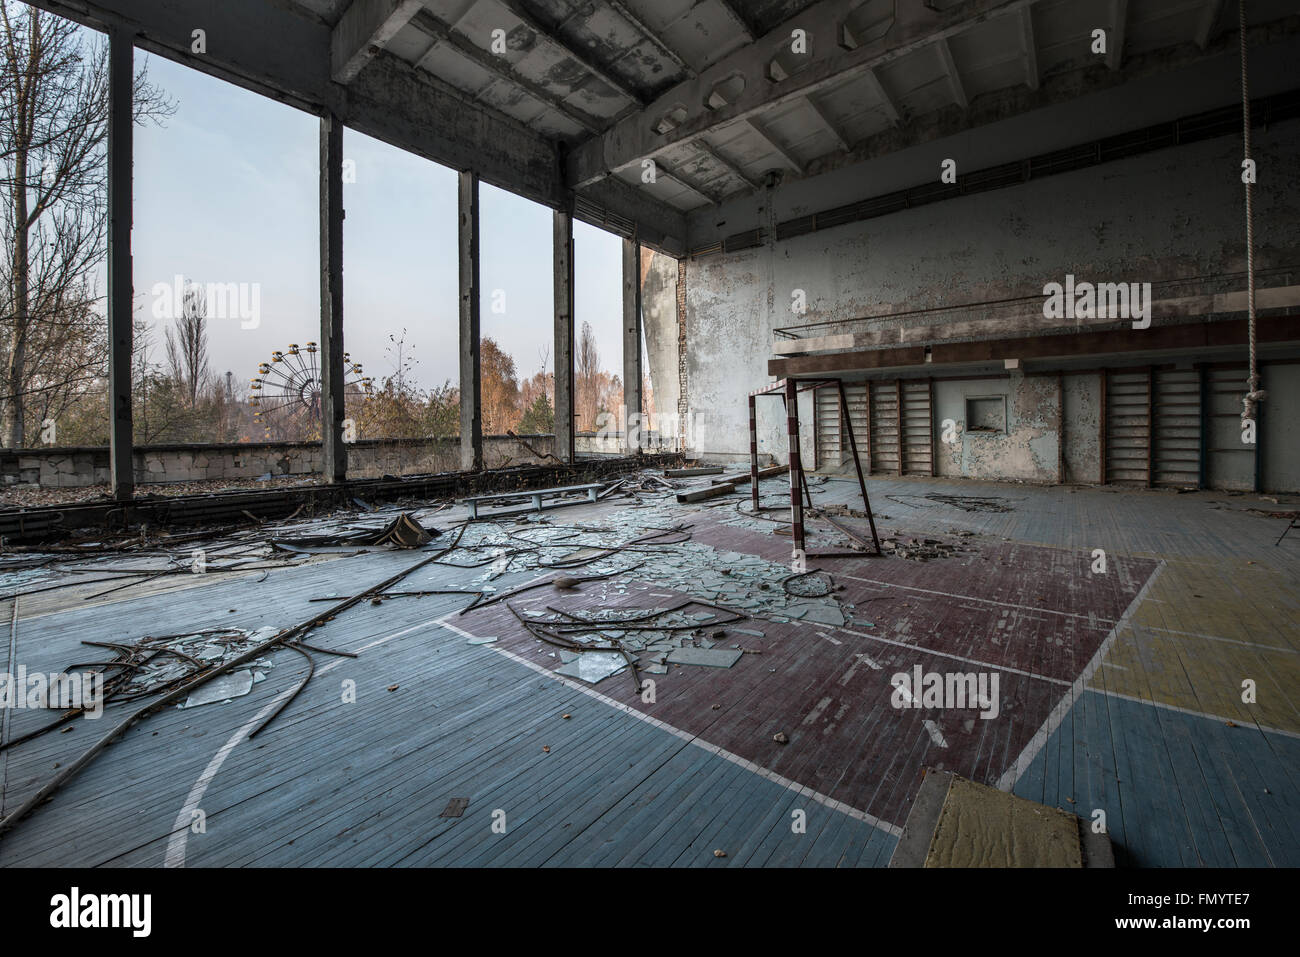 Gymnasium overlooking iconic ferris wheel in Pripyat, Chernobyl scene of 1986 nuclear disaster - Stock Image